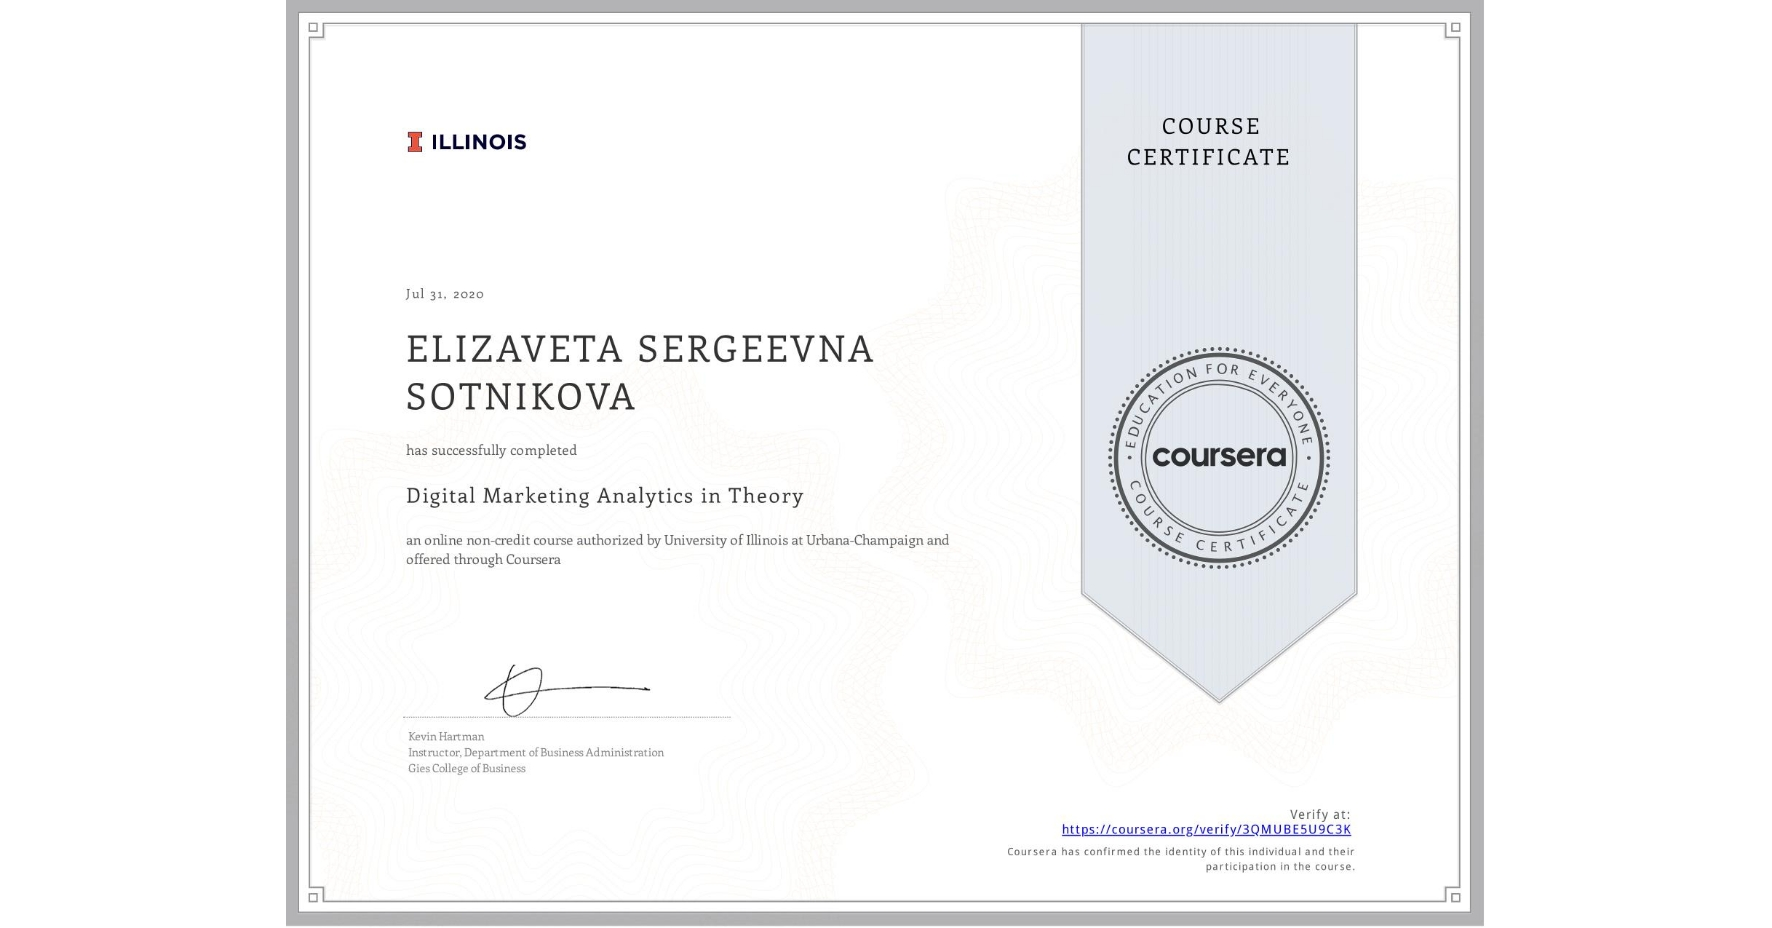 View certificate for ELIZAVETA SERGEEVNA  SOTNIKOVA, Digital Marketing Analytics in Theory, an online non-credit course authorized by University of Illinois at Urbana-Champaign and offered through Coursera